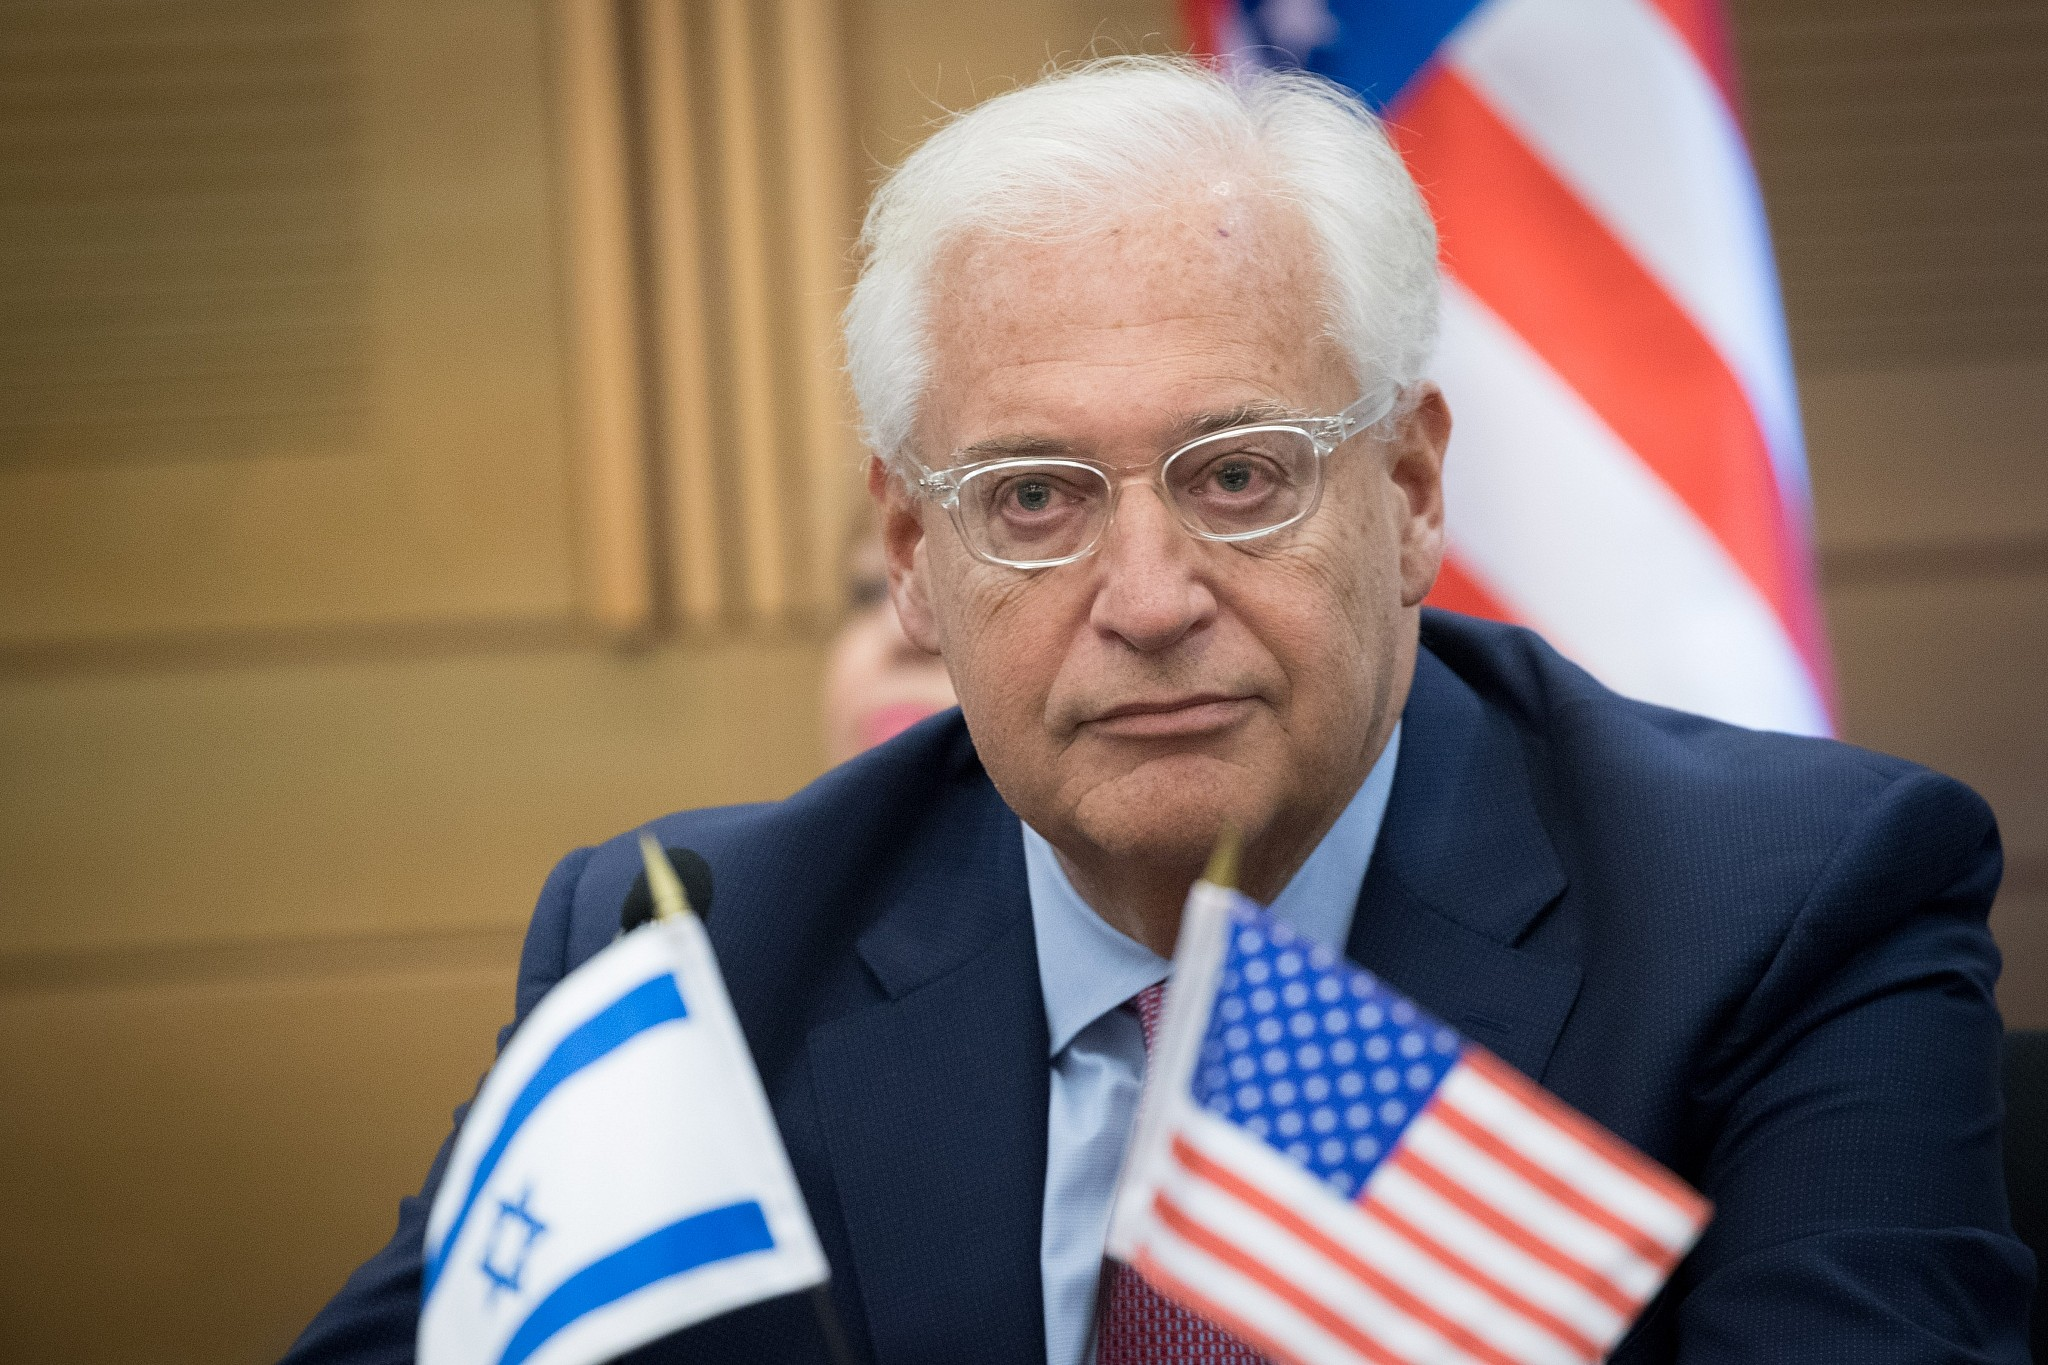 USA envoy: Stop calling West Bank 'occupied'